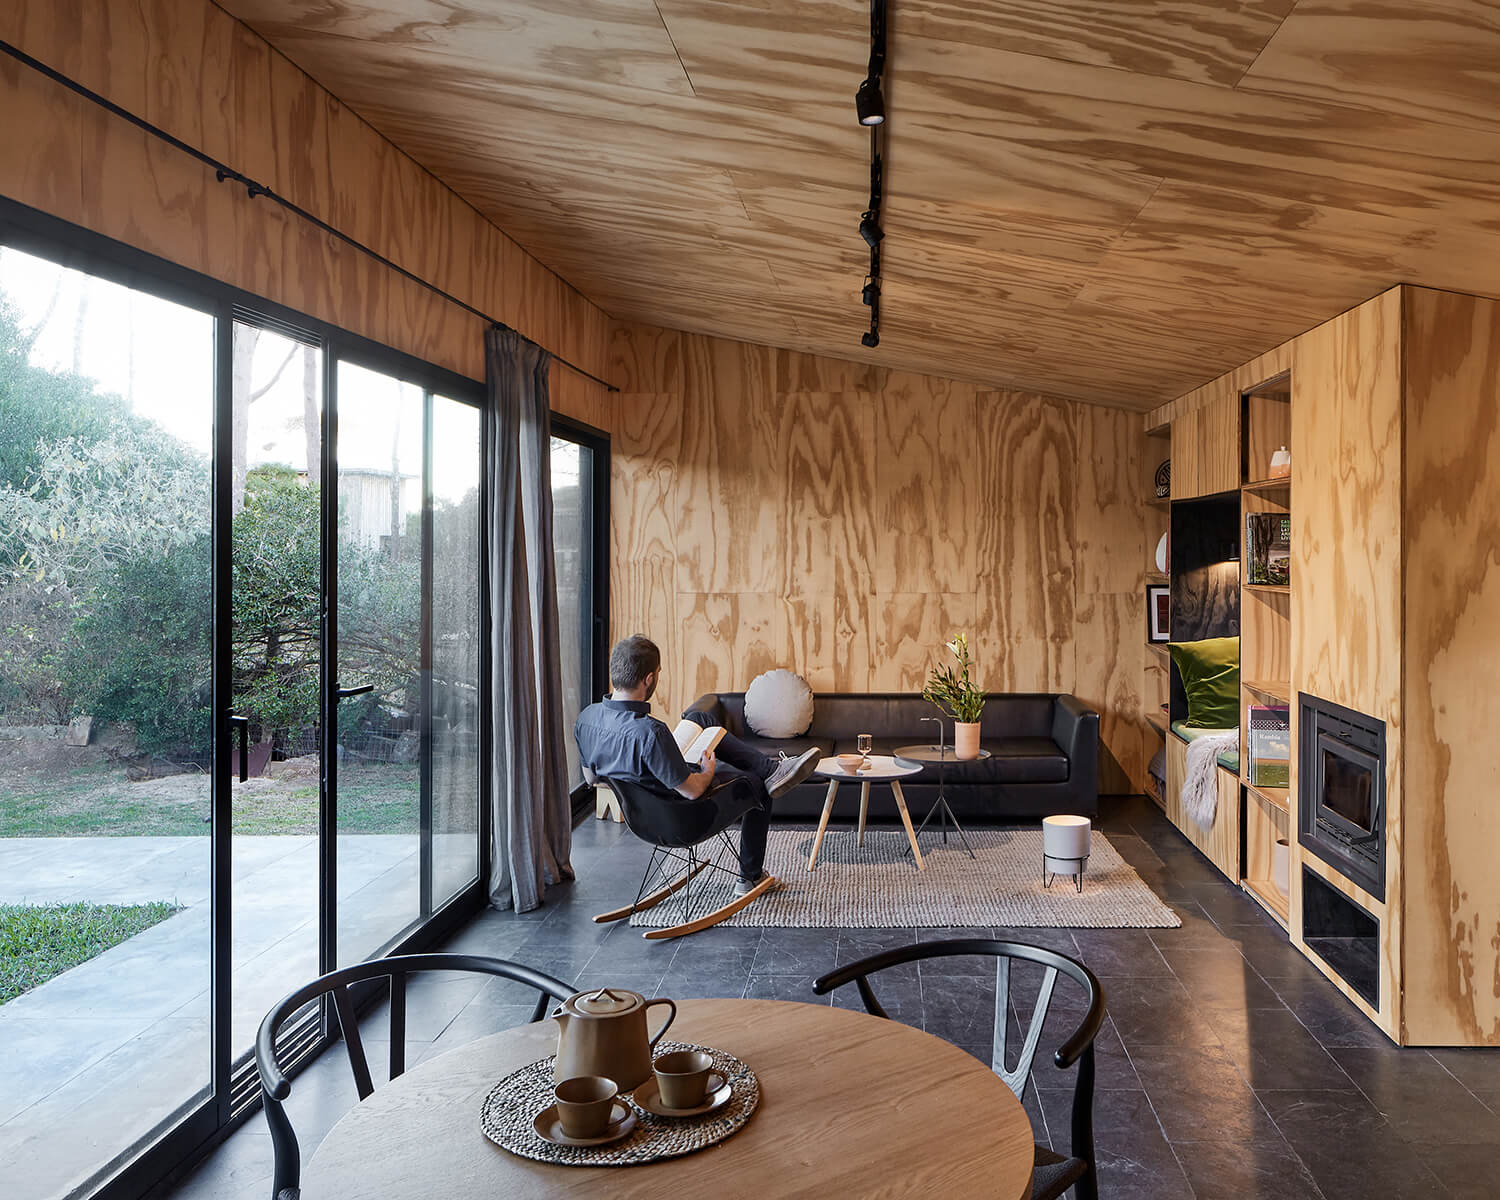 Interior view of the cabin's open concept living-dining area, showing the wood-clad ceiling and walls and black accents